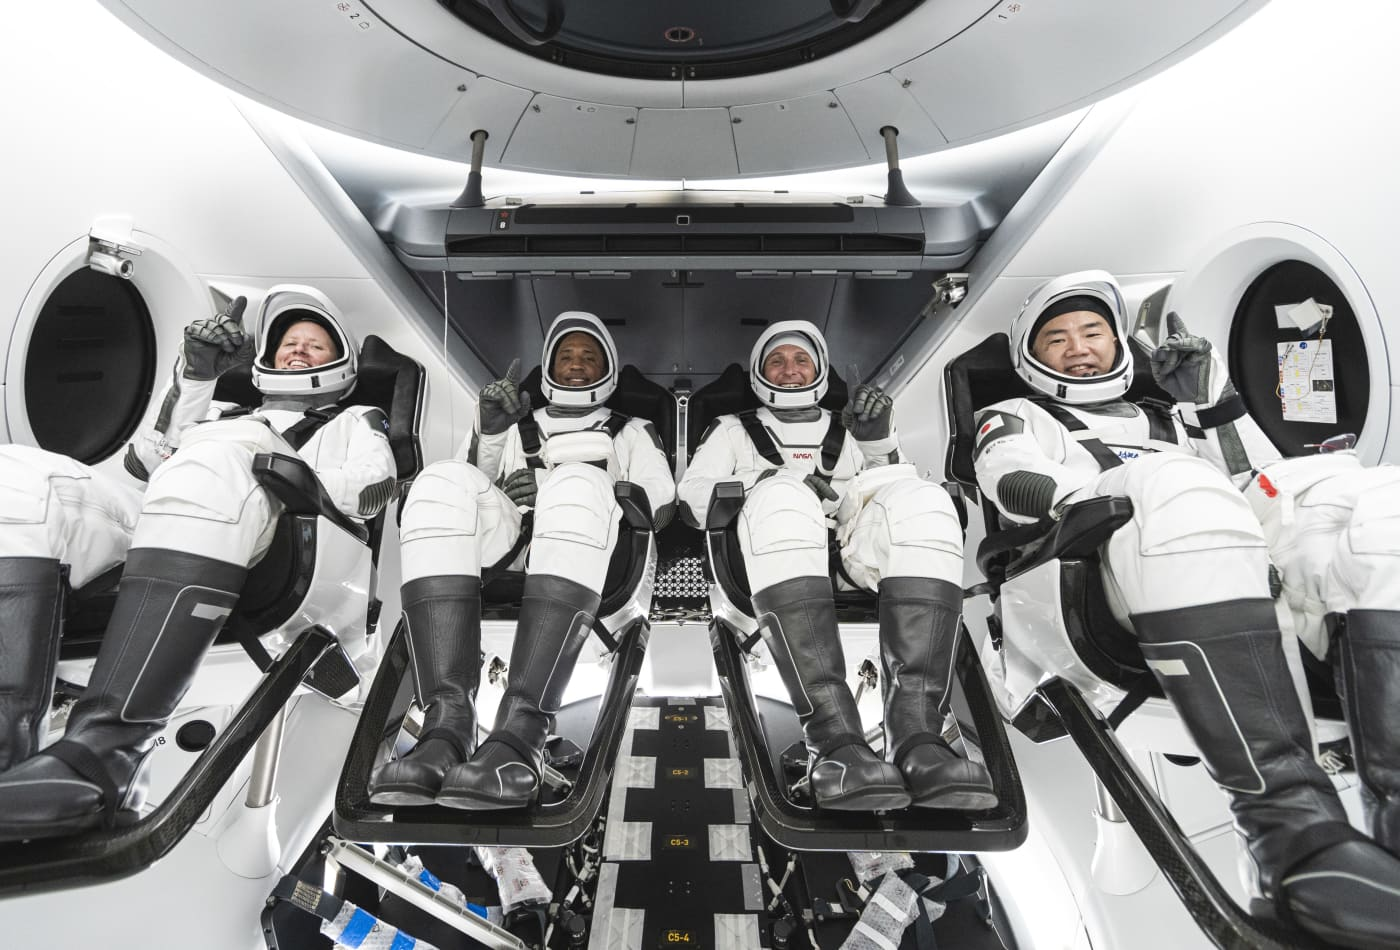 SpaceX and NASA plan to launch first full length astronaut mission in late October